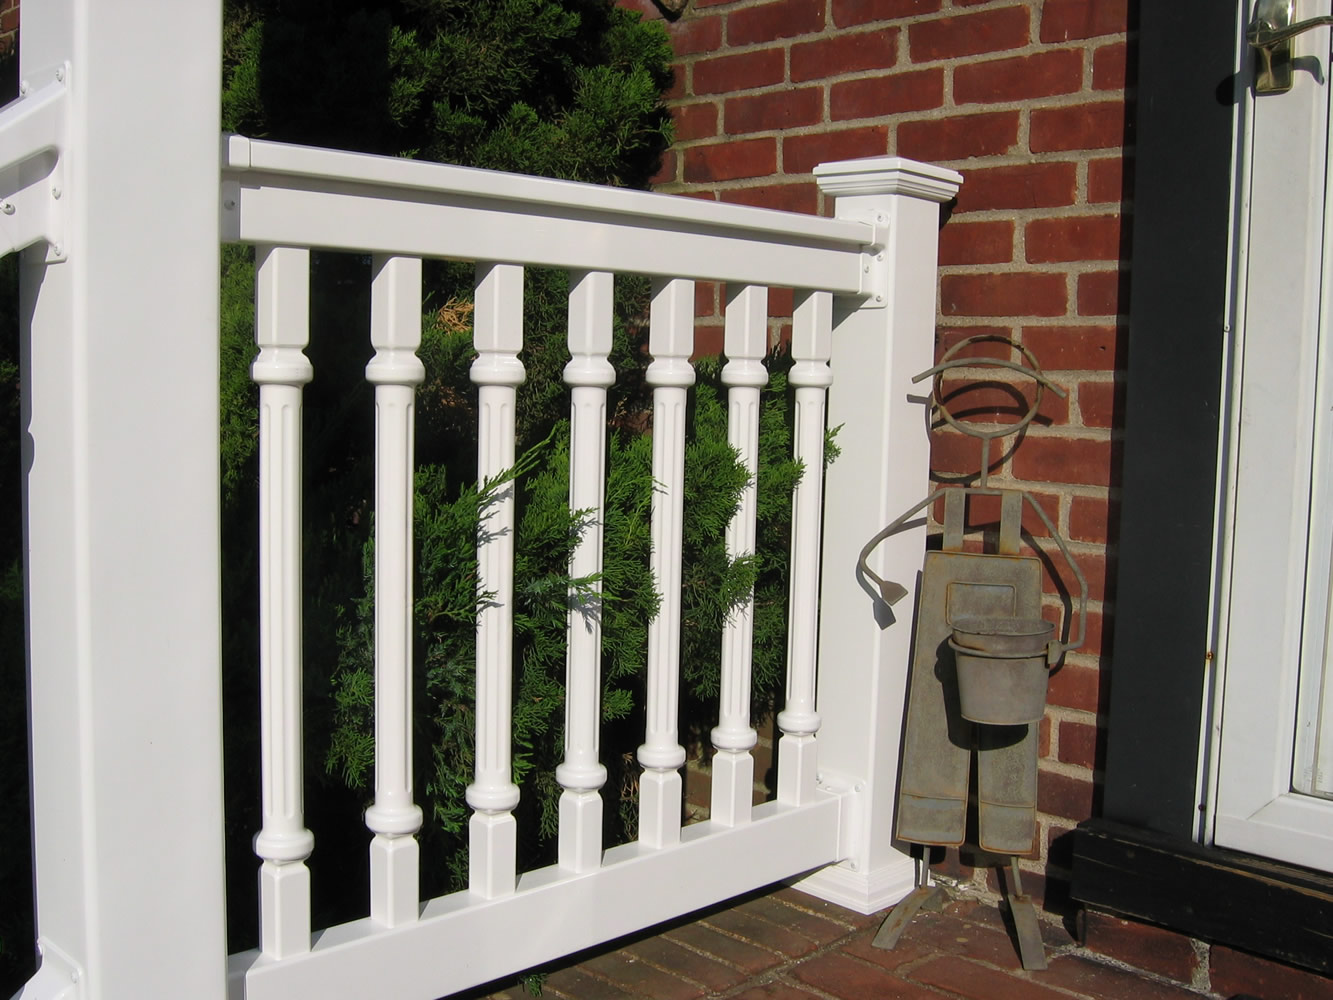 Reno Style PVC Railing with T-rail Tops and Porch Posts